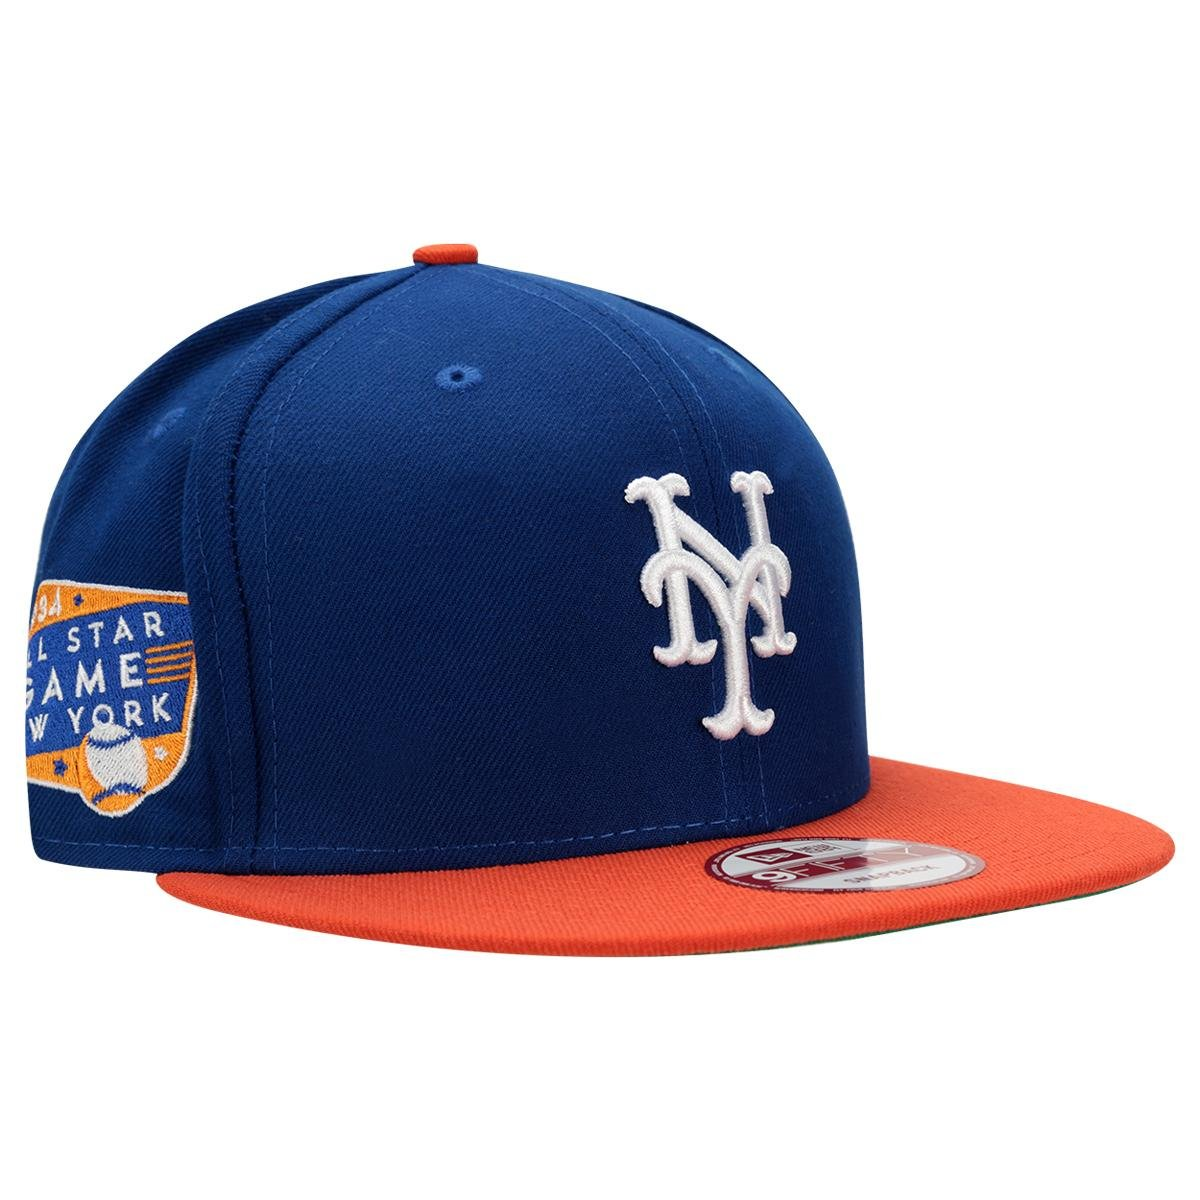 77806f596 Boné New Era 950 MLB All Star Patch Redux 1934 - Compre Agora